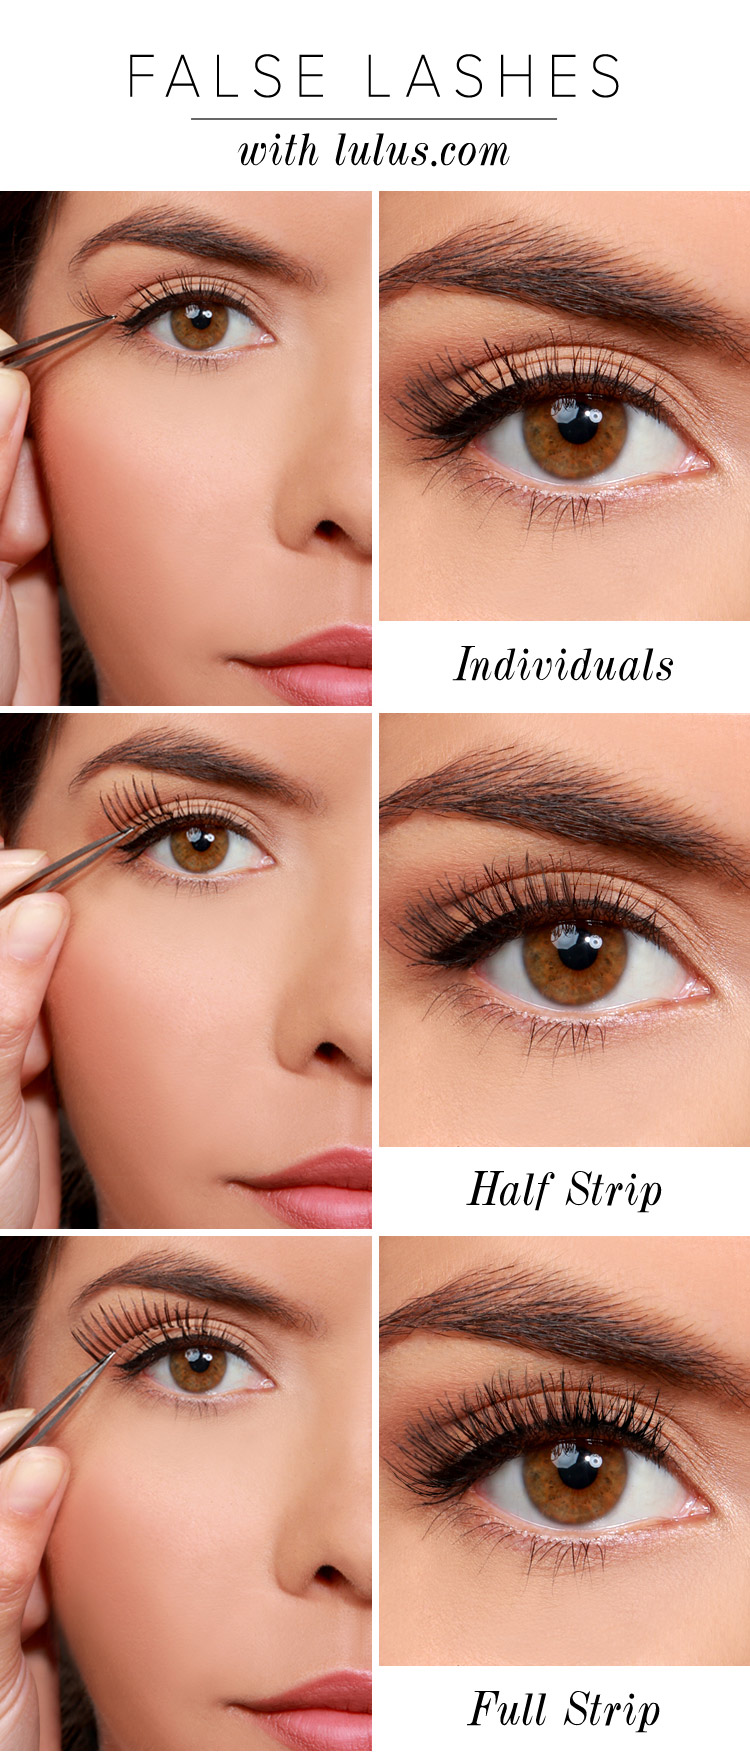 Lulus How To 3 Ways To Wear False Eyelashes Lulus Fashion Blog